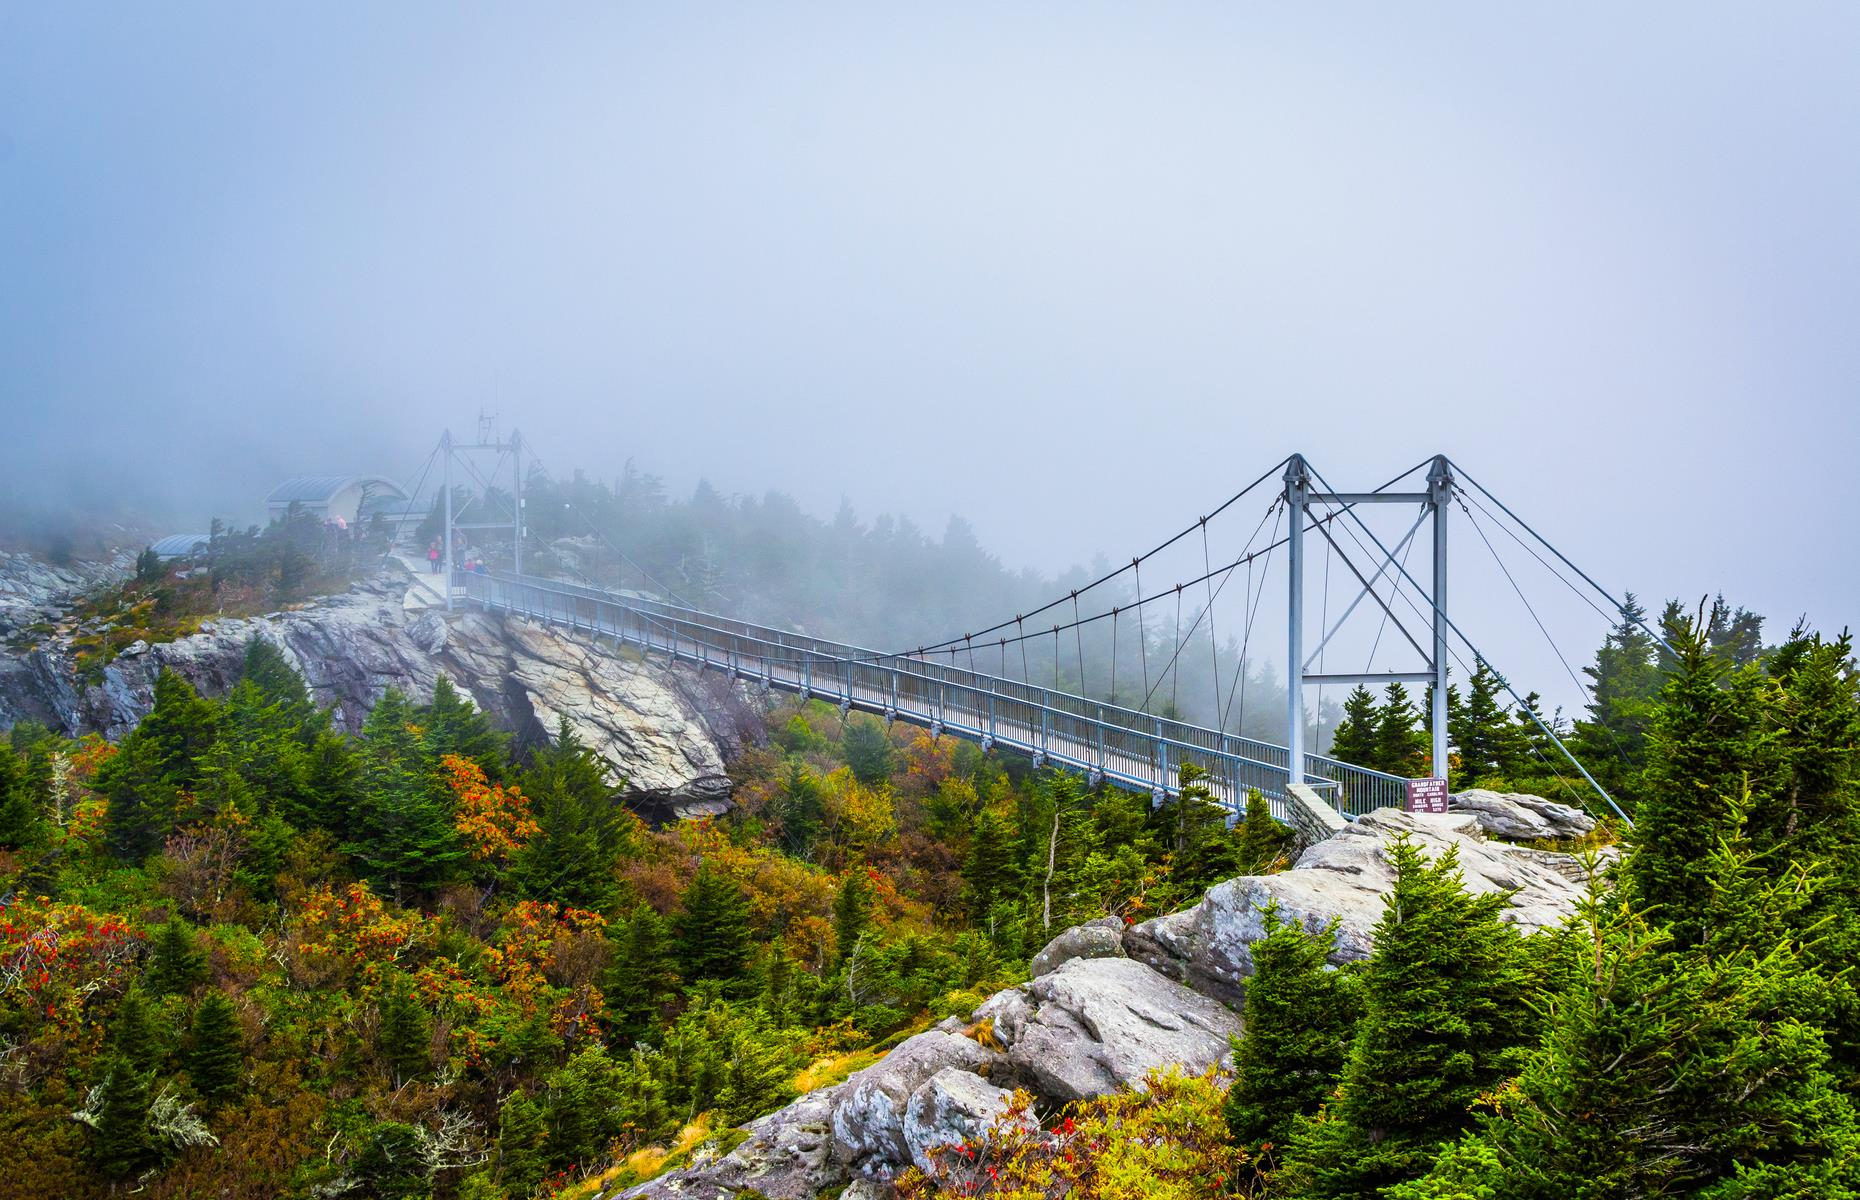 Slide 35 of 52: This sky-high bridge in Grandfather Mountain State Park is tipped as the highest suspension footbridge in the country. A mile (1.6km) above sea level, it sways with the slightest gust. It provides the foreground to the park's namesake mountain – a near 6,000-foot (1,829m) peak. Now check out the most wonderful views on Earth.